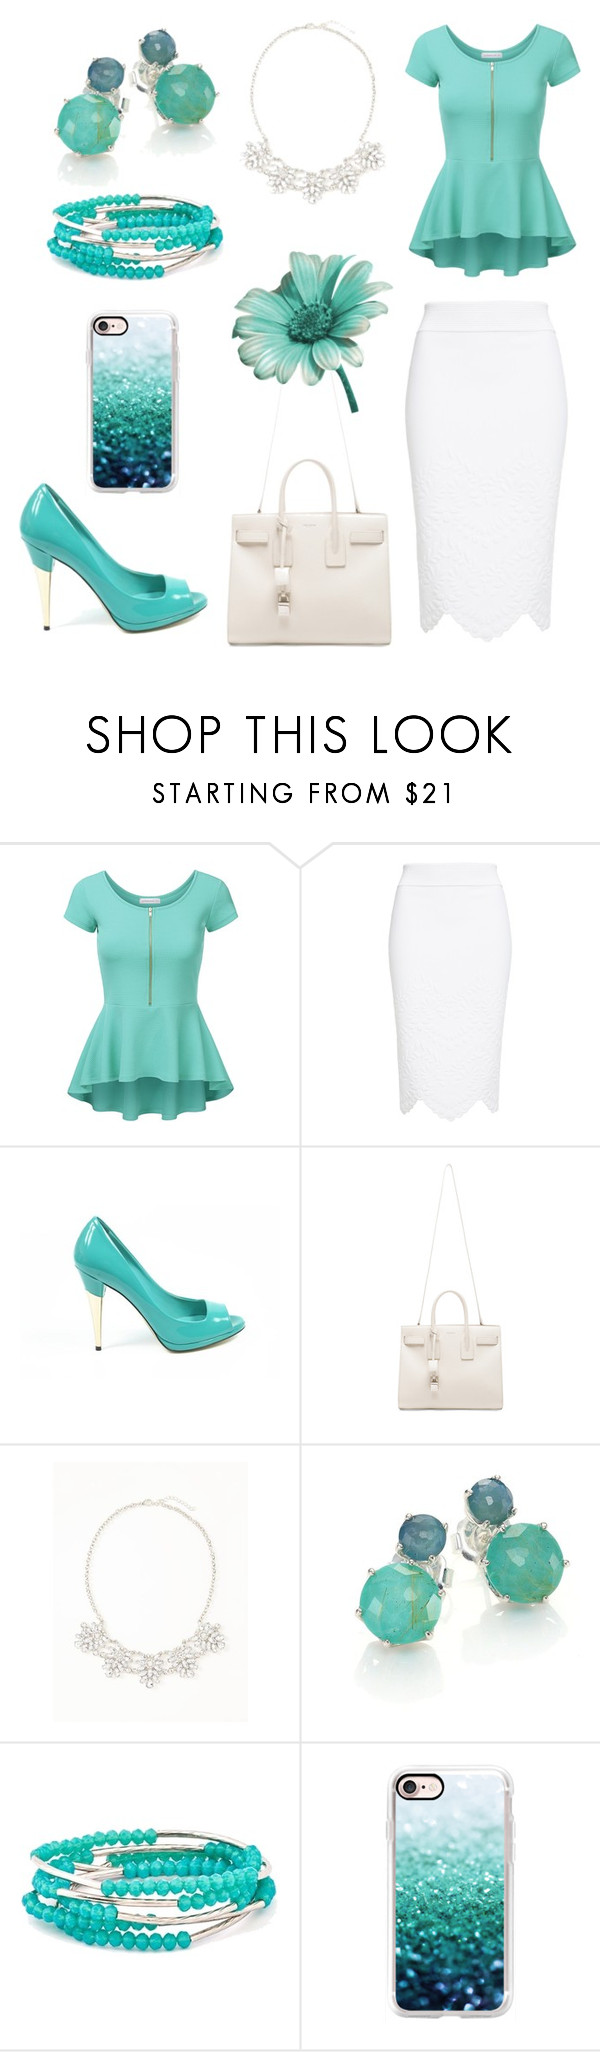 """Summer #7"" by daria-red ❤ liked on Polyvore featuring Alexander McQueen, Sebastian Milano, Yves Saint Laurent, Old Navy, Ippolita, Chrysalis, Casetify and Summer"